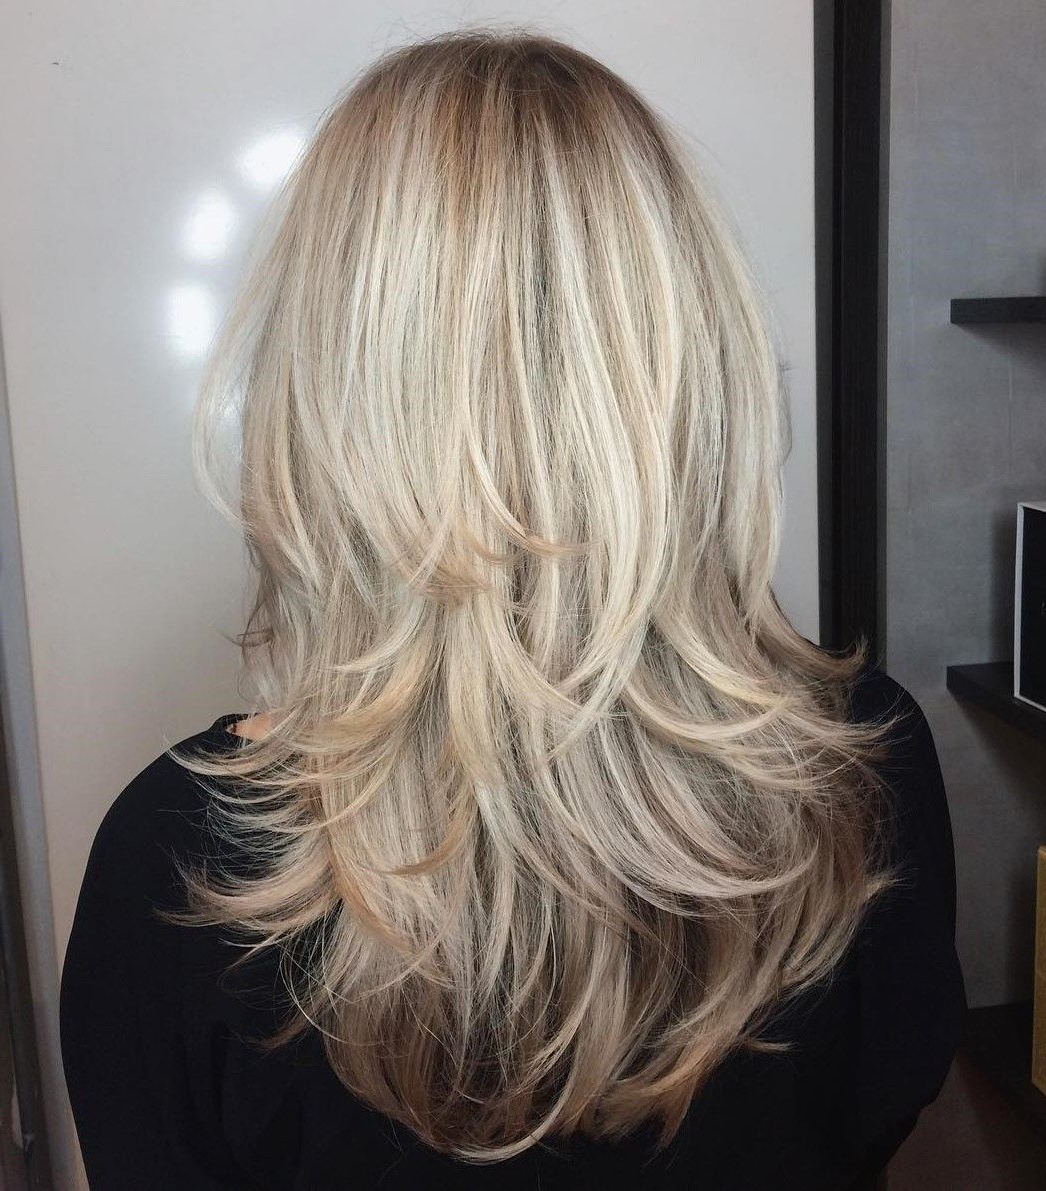 Well Known Blonde Textured Haircuts With Angled Layers For 80 Cute Layered Hairstyles And Cuts For Long Hair In 2019 (Gallery 1 of 20)